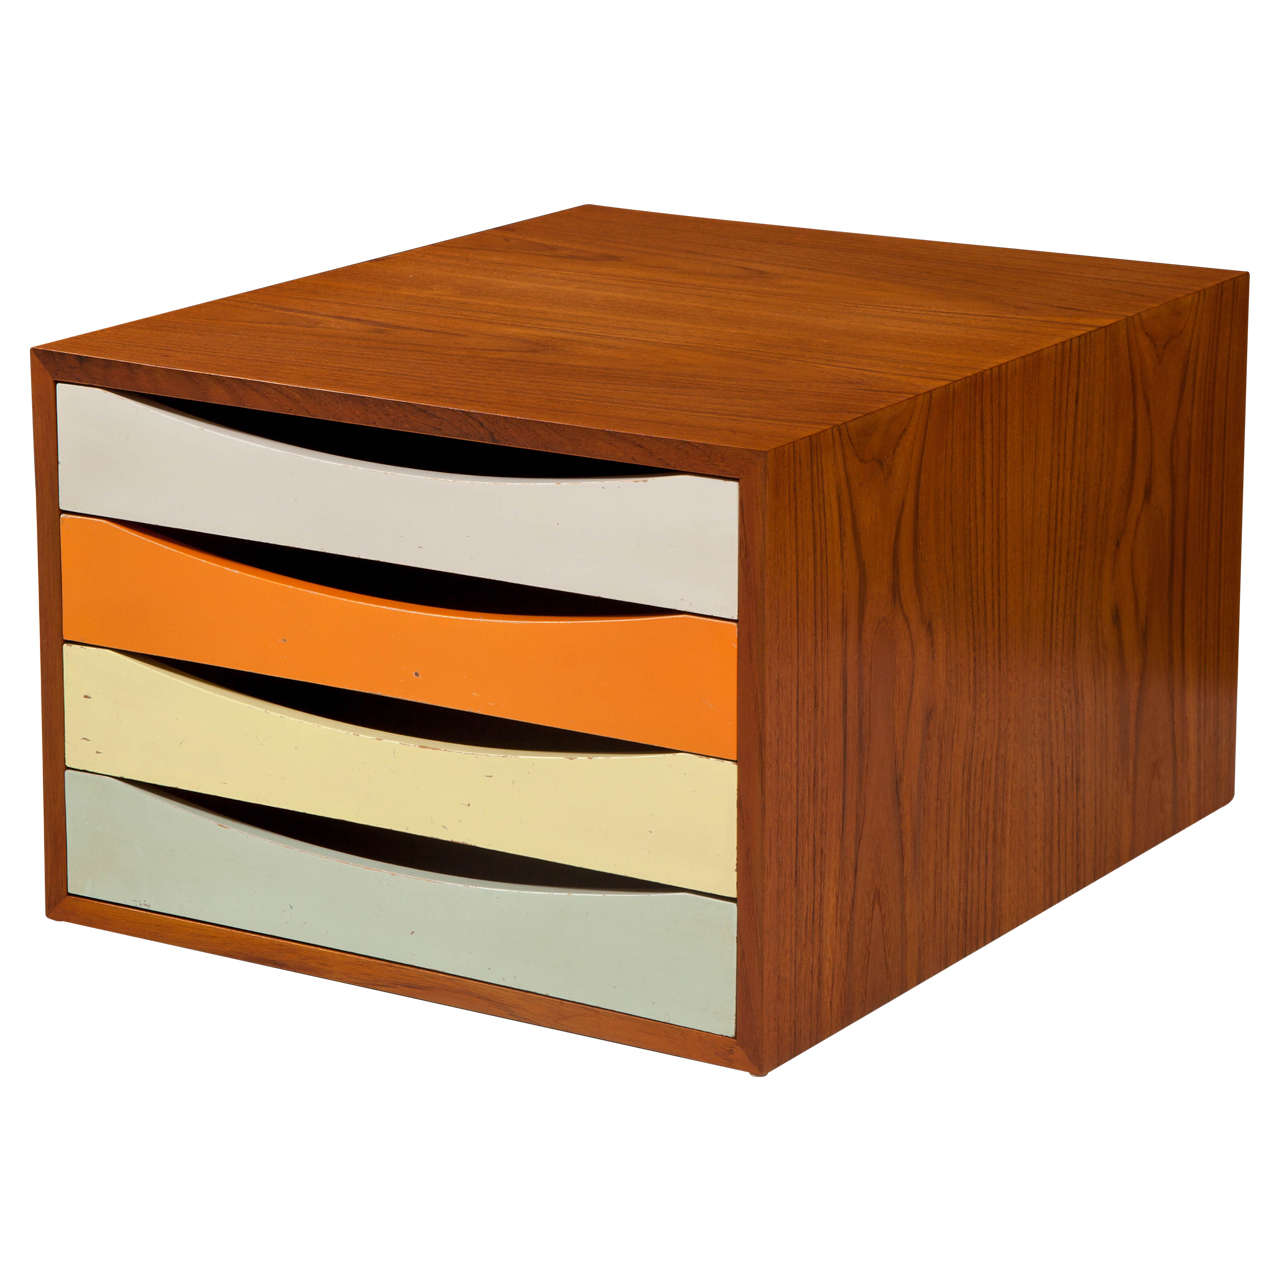 Finn juhl four drawer teak desk console at 1stdibs